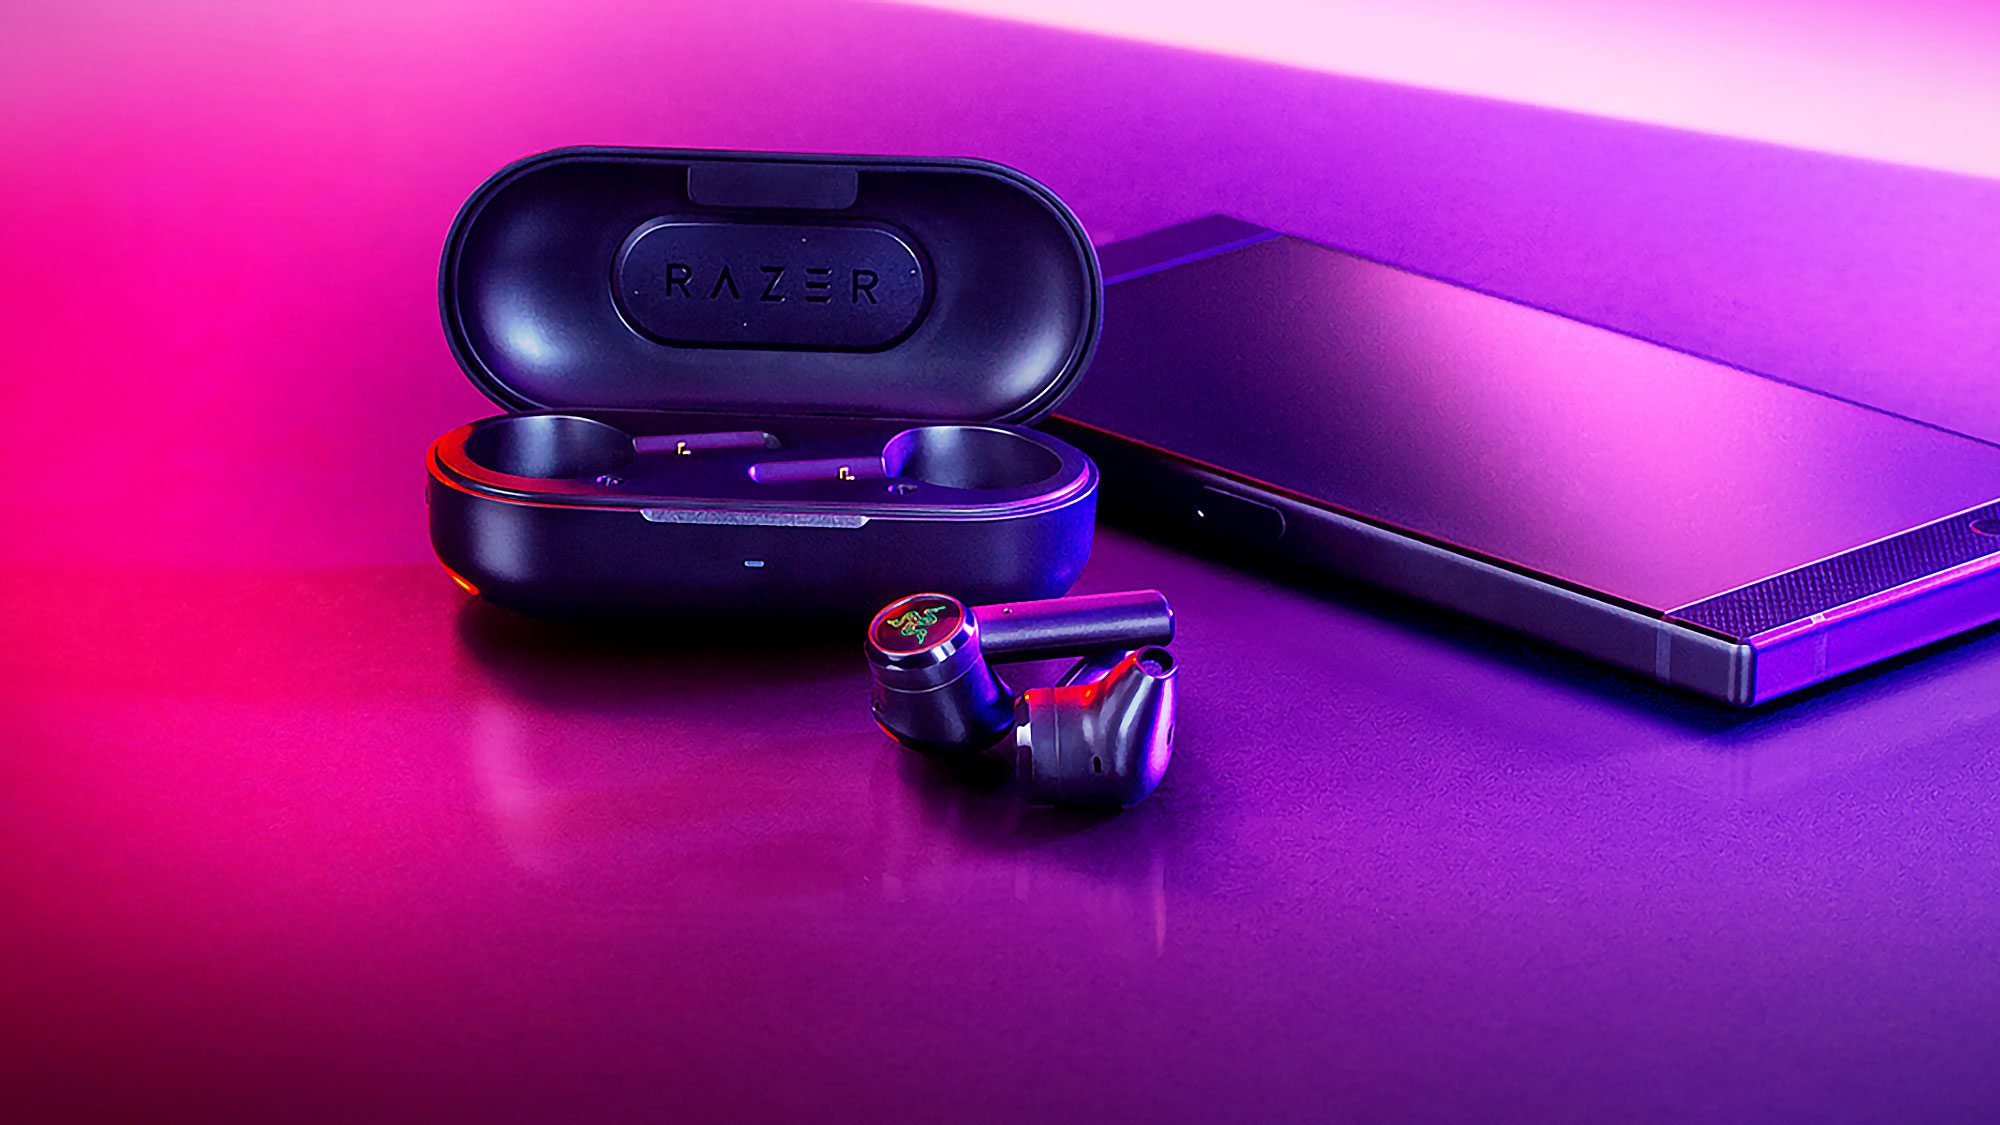 Razer Hammerhead Goes Cordless Has A Very Modest Battery Life Of Just 3 Hours Shouts